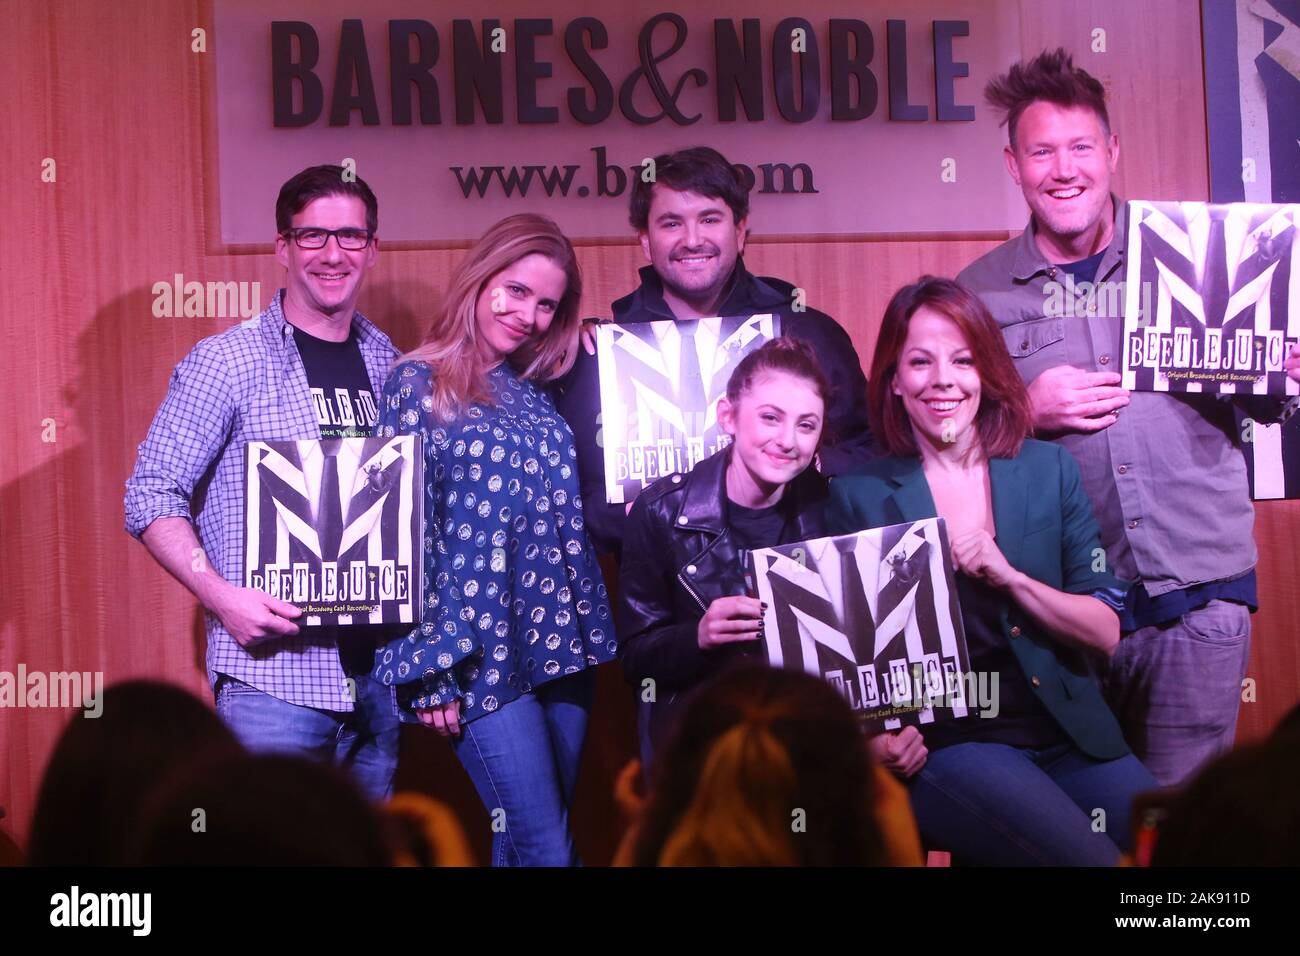 Beetlejuice The Musical Original Cast Release Celebration Album Performance Held At Barnes And Noble Bookstore Featuring